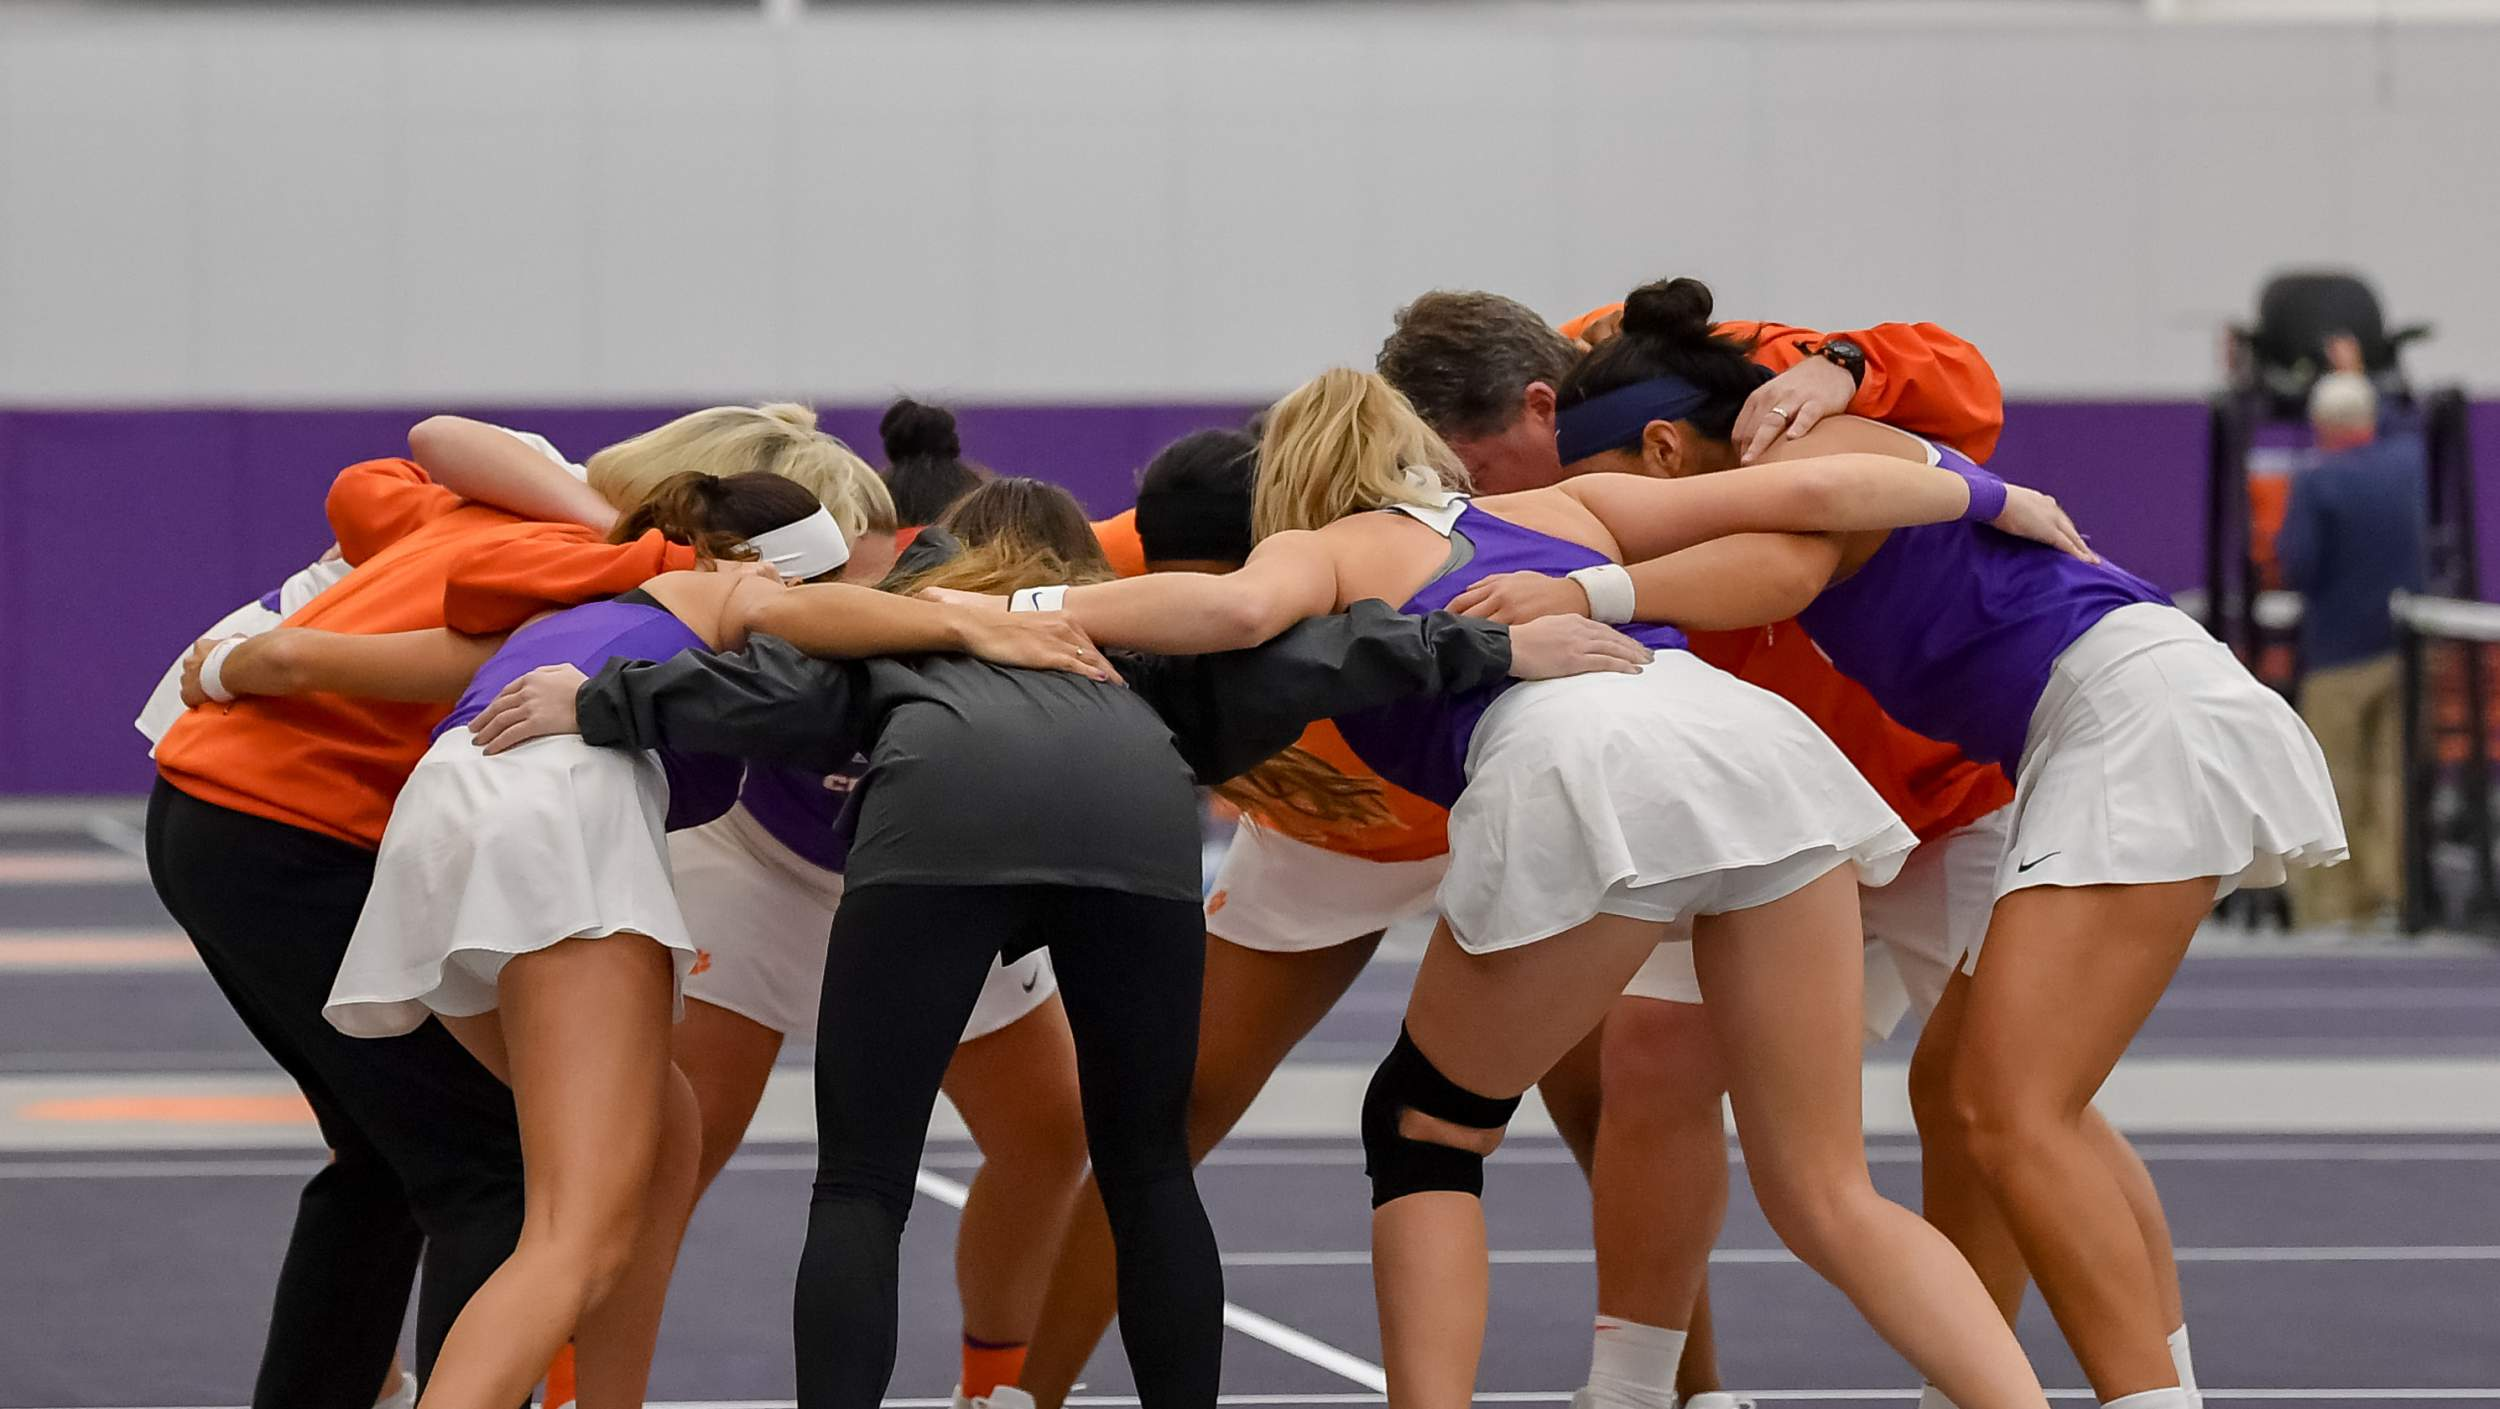 Tigers Win Two in Debut at Duckworth Family Tennis Facility